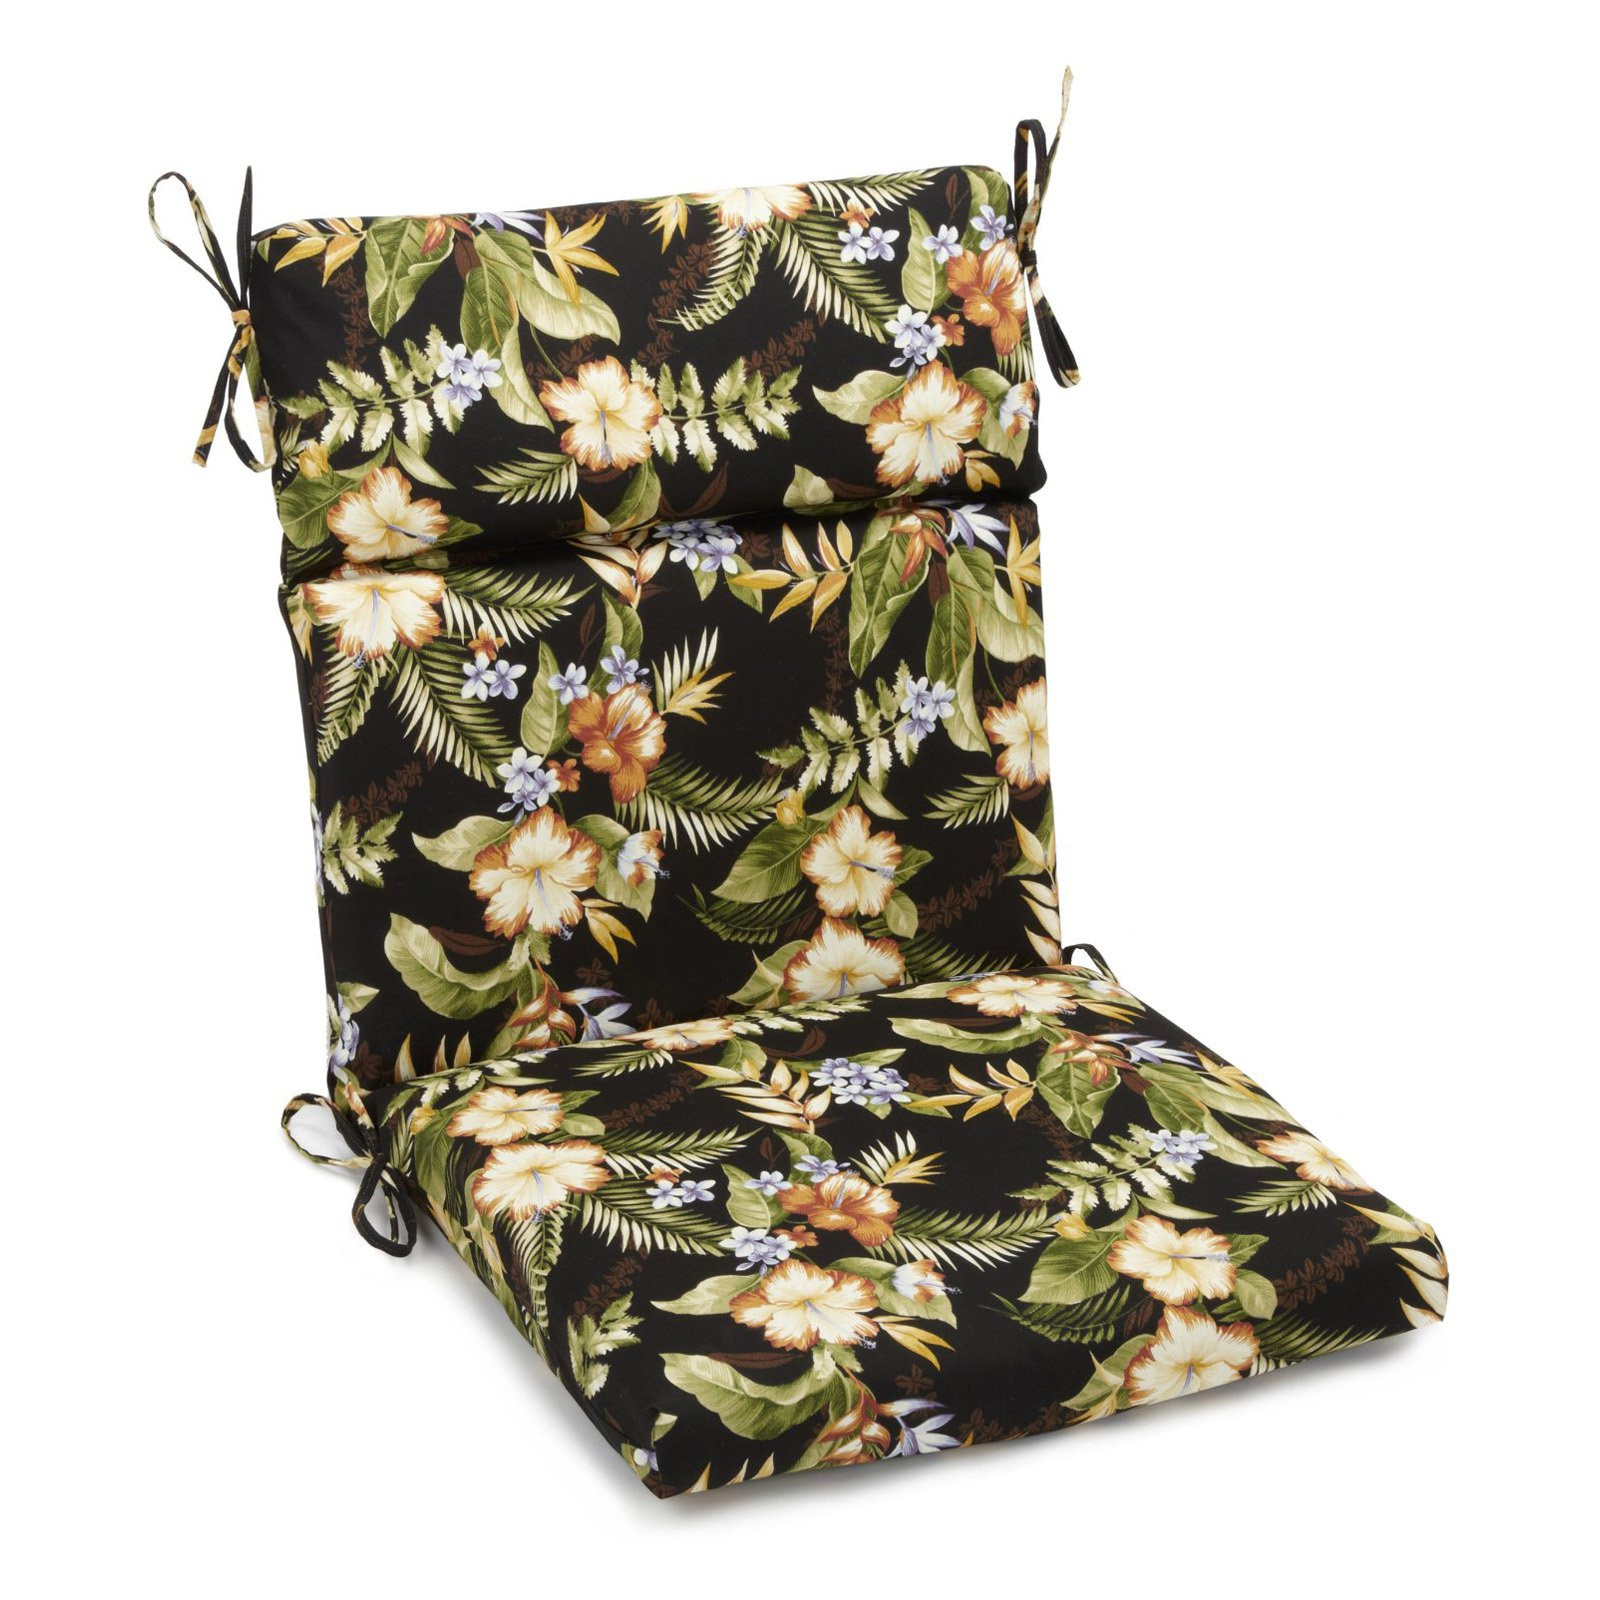 Blazing Needles 22 x 45 in Outdoor High Back Patio Chair Cushion